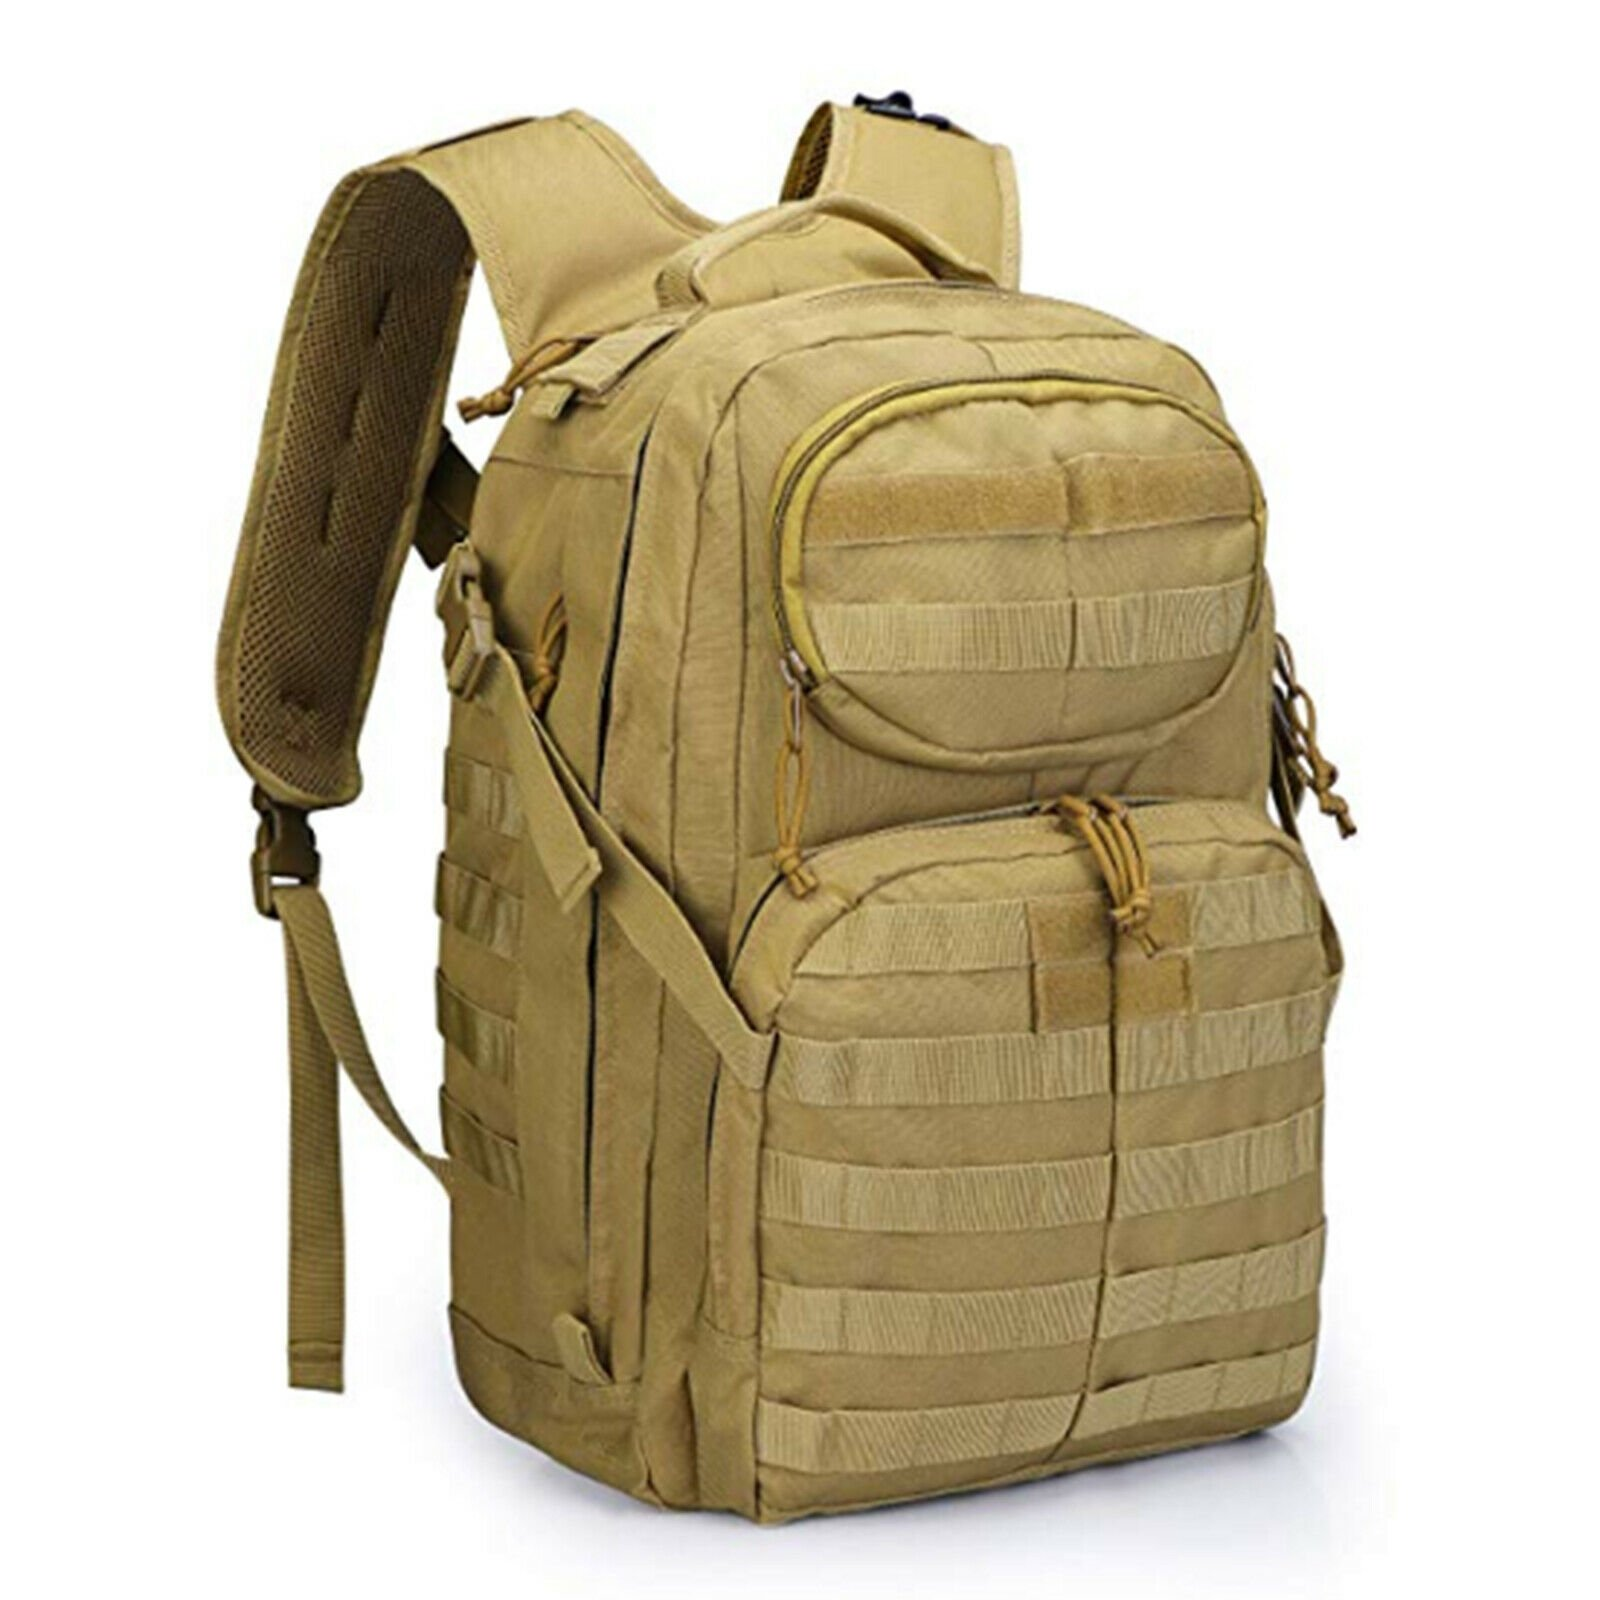 40L Men Tactical Molly Army Backpack Assault Travel Camping Hiking Ruc...